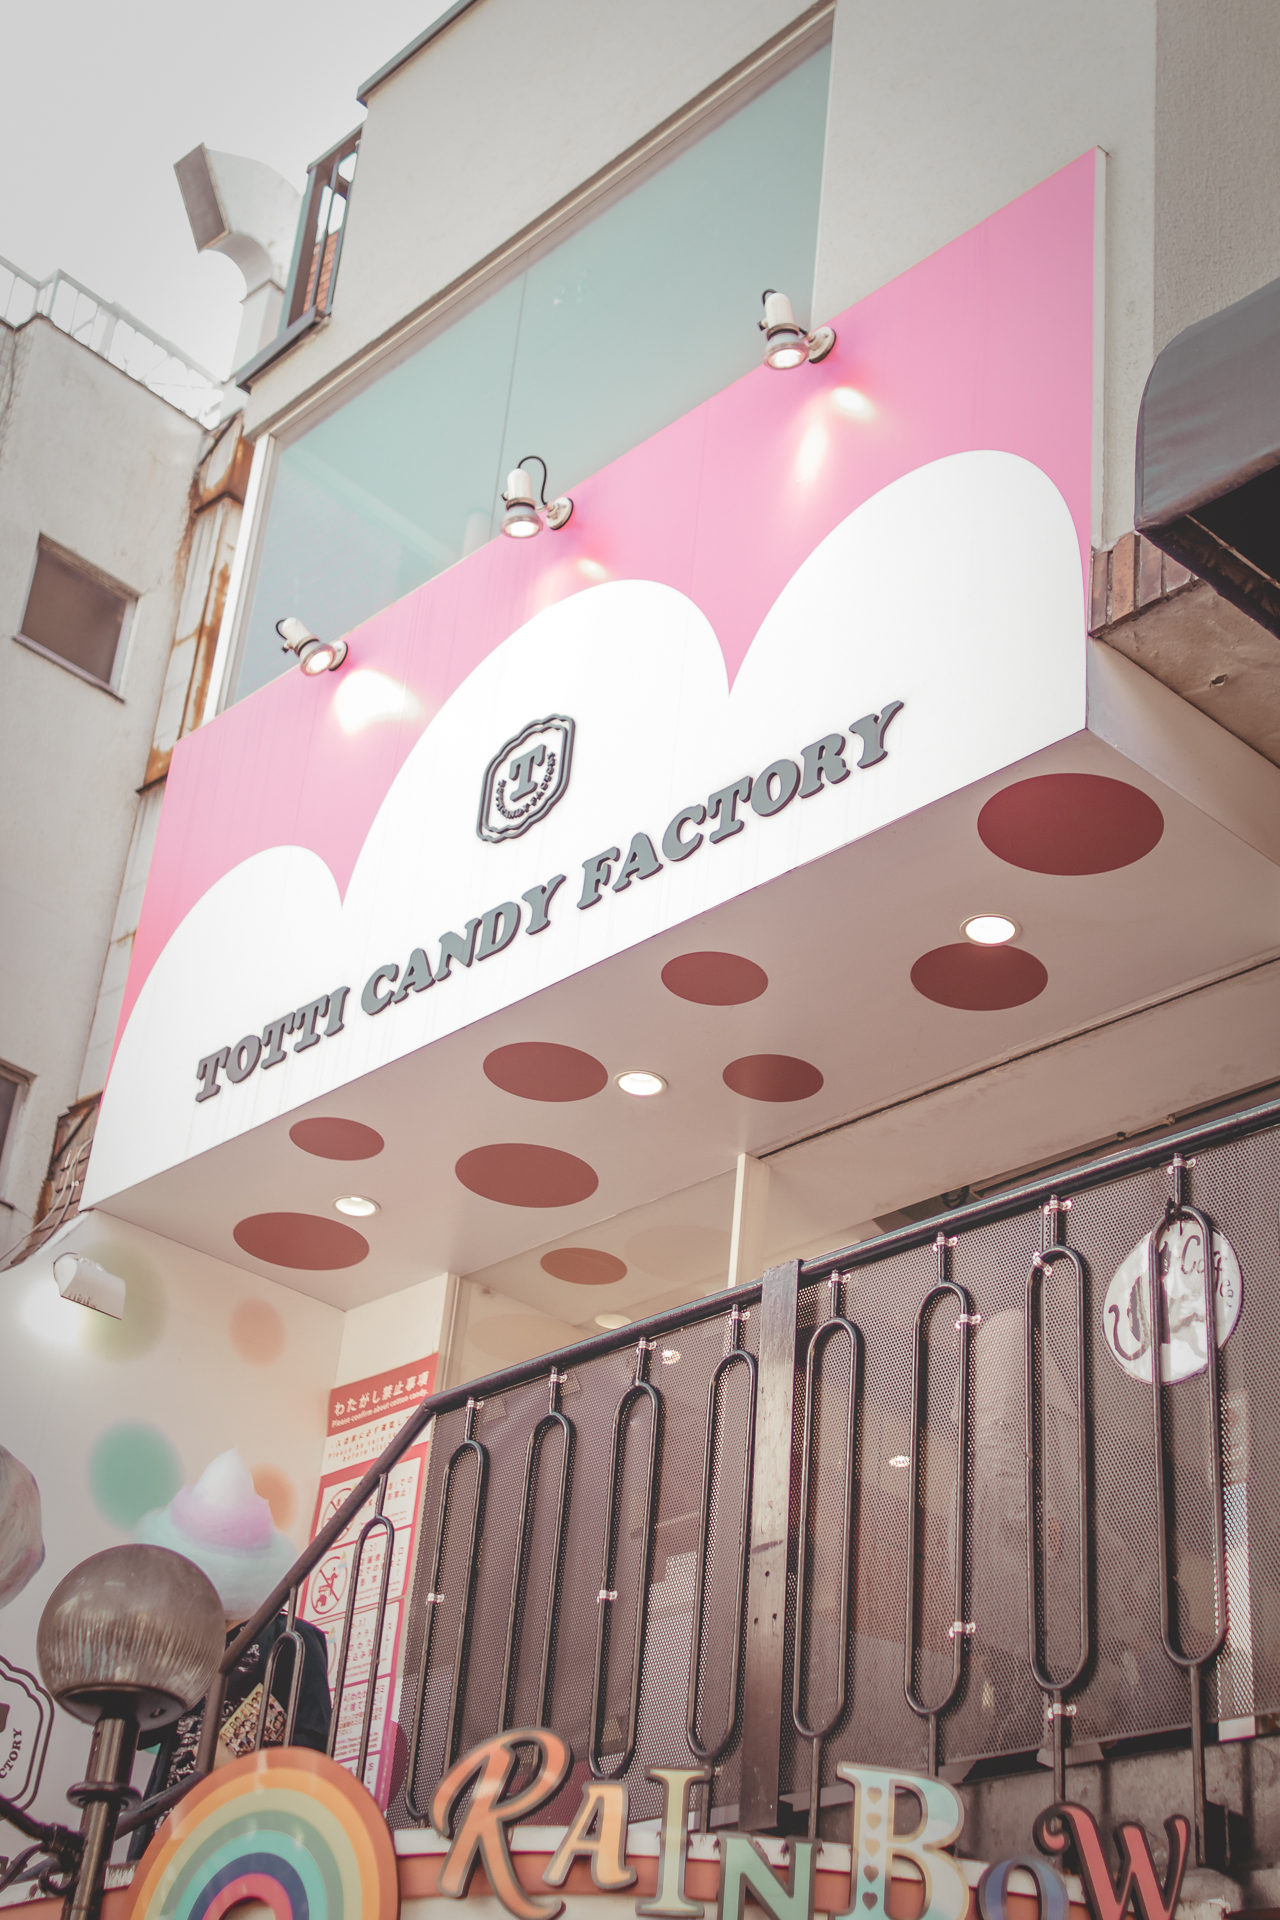 Totti Candy Factory is a gourmet sweets shop nestled in the heart of Takeshita Dori in Harajuku. This whimsical and dream-like confectionery boasts towering rainbow cotton candy and kawaii miniature cake pops.